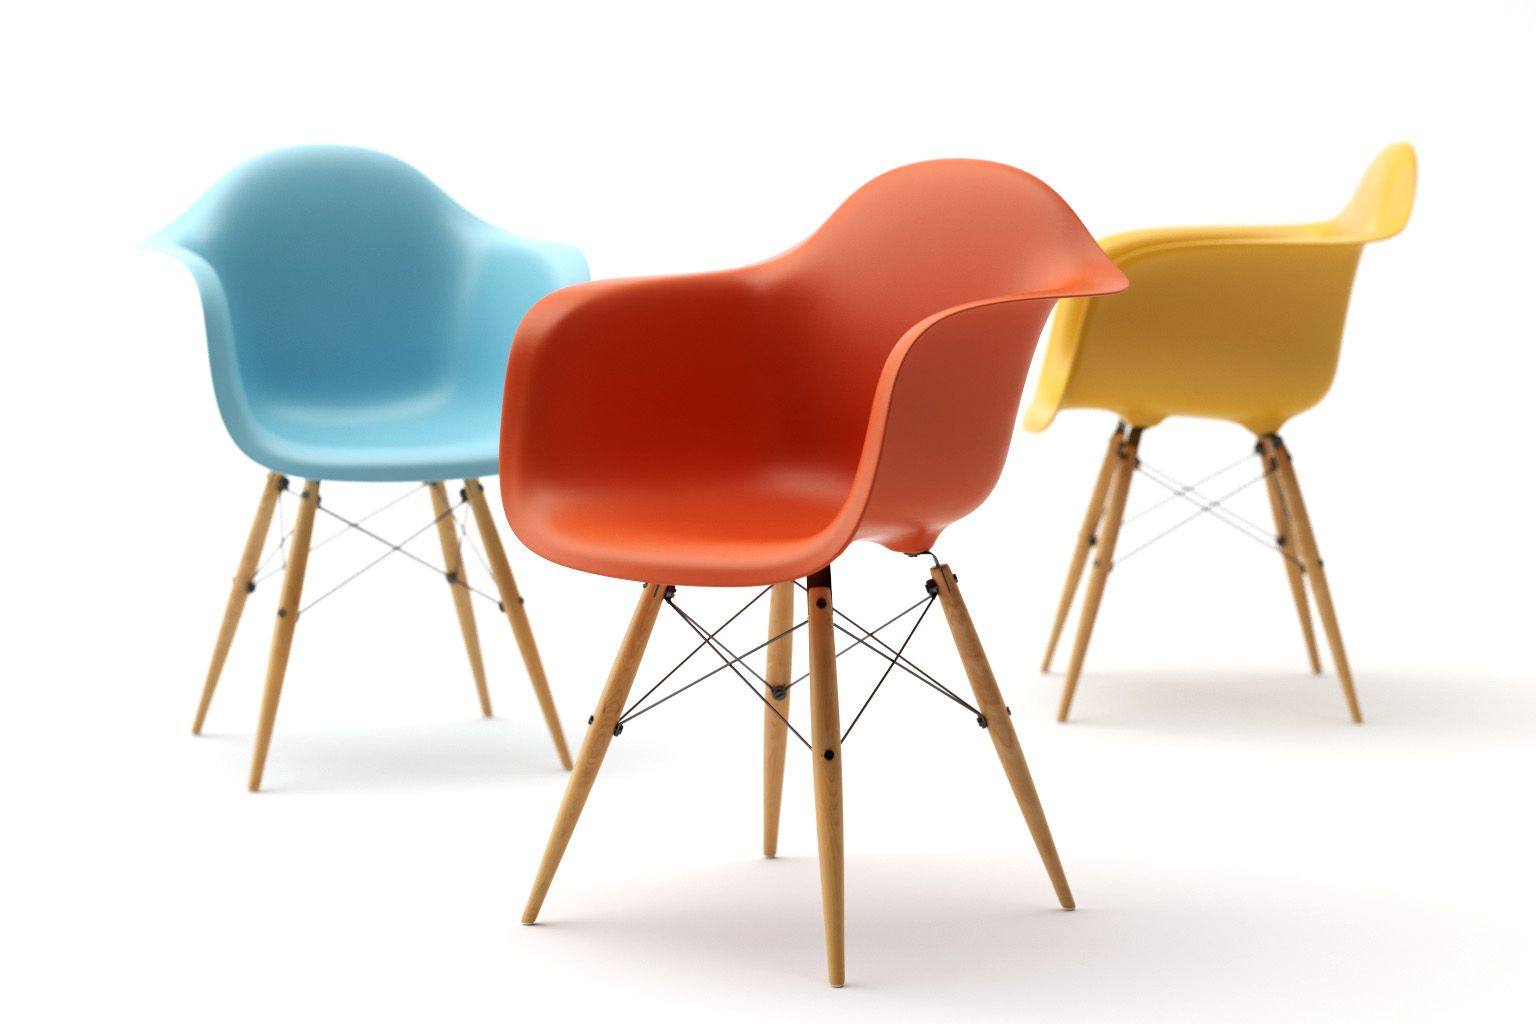 Eames plastic bucket chairs done in CAD, by Robin Stethem. STETHEM ...